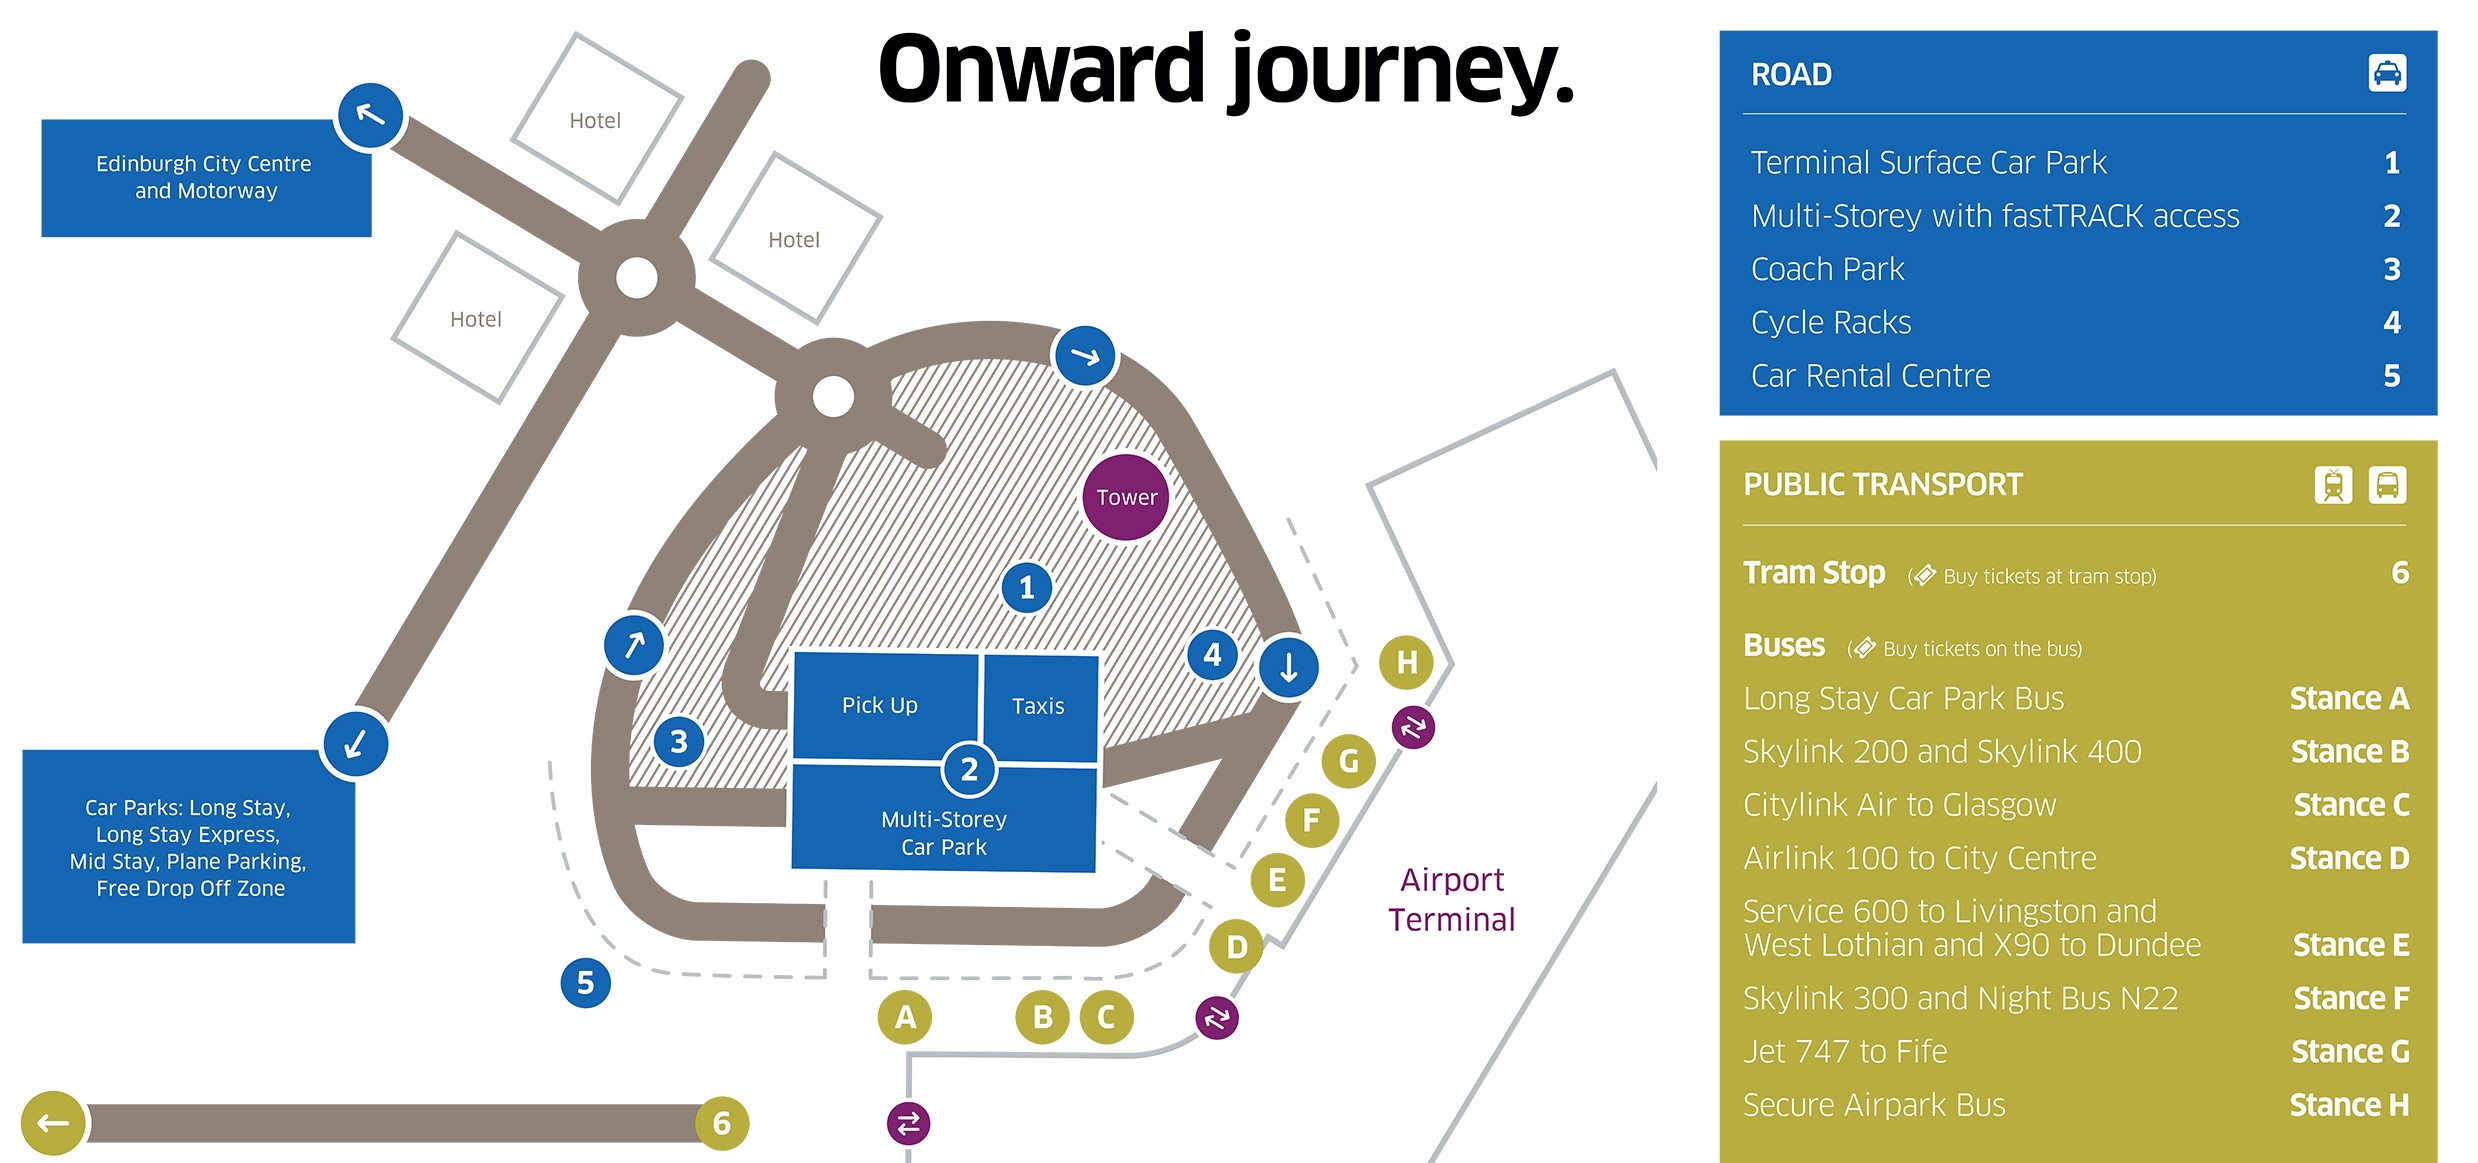 Onwards journey - campus map